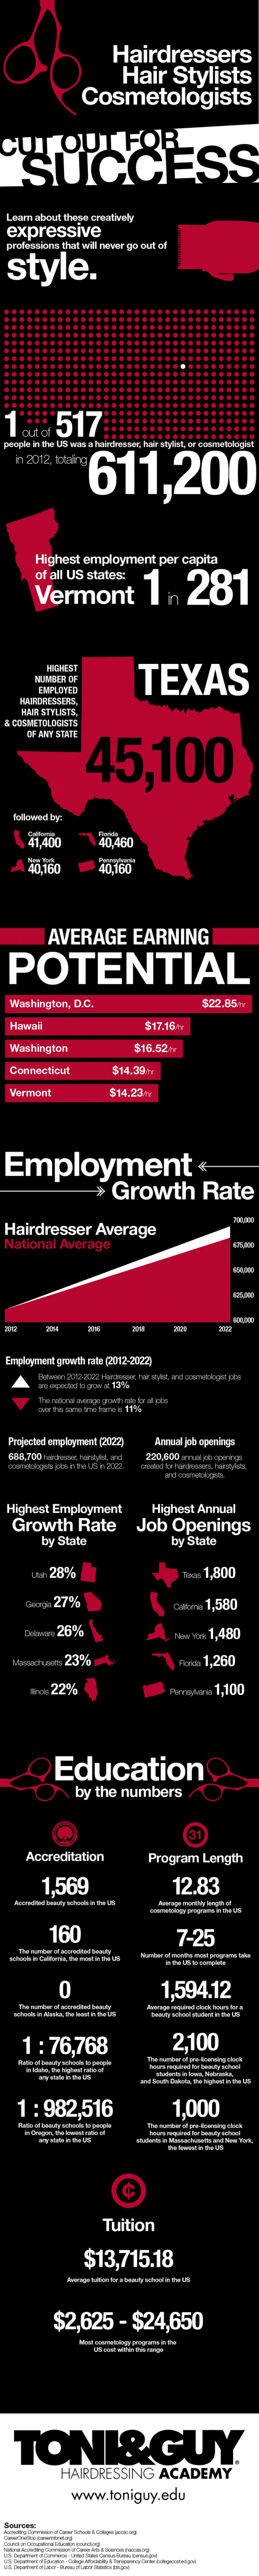 Hairdressers, Hair Stylists and Cosmetologists Career Infographic